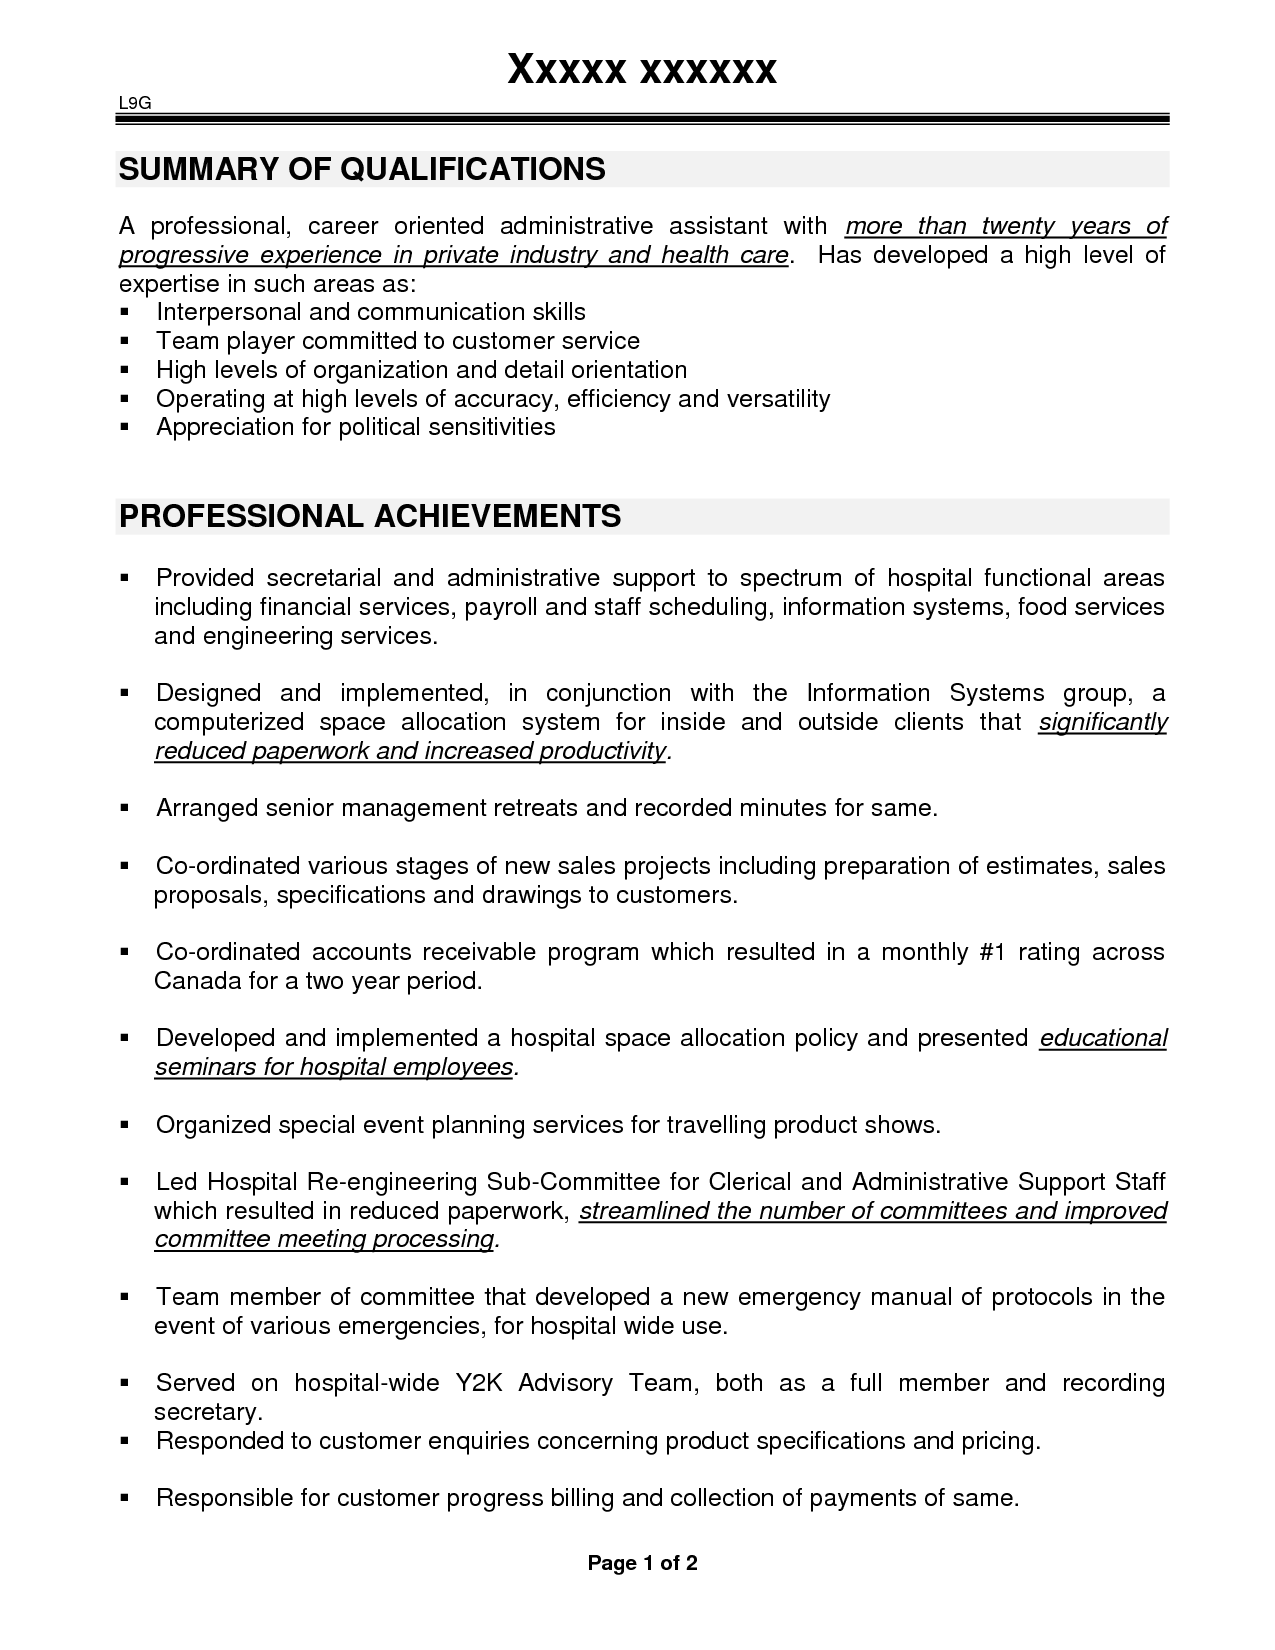 Sample Resume For Certified Medical Administrative Assistant